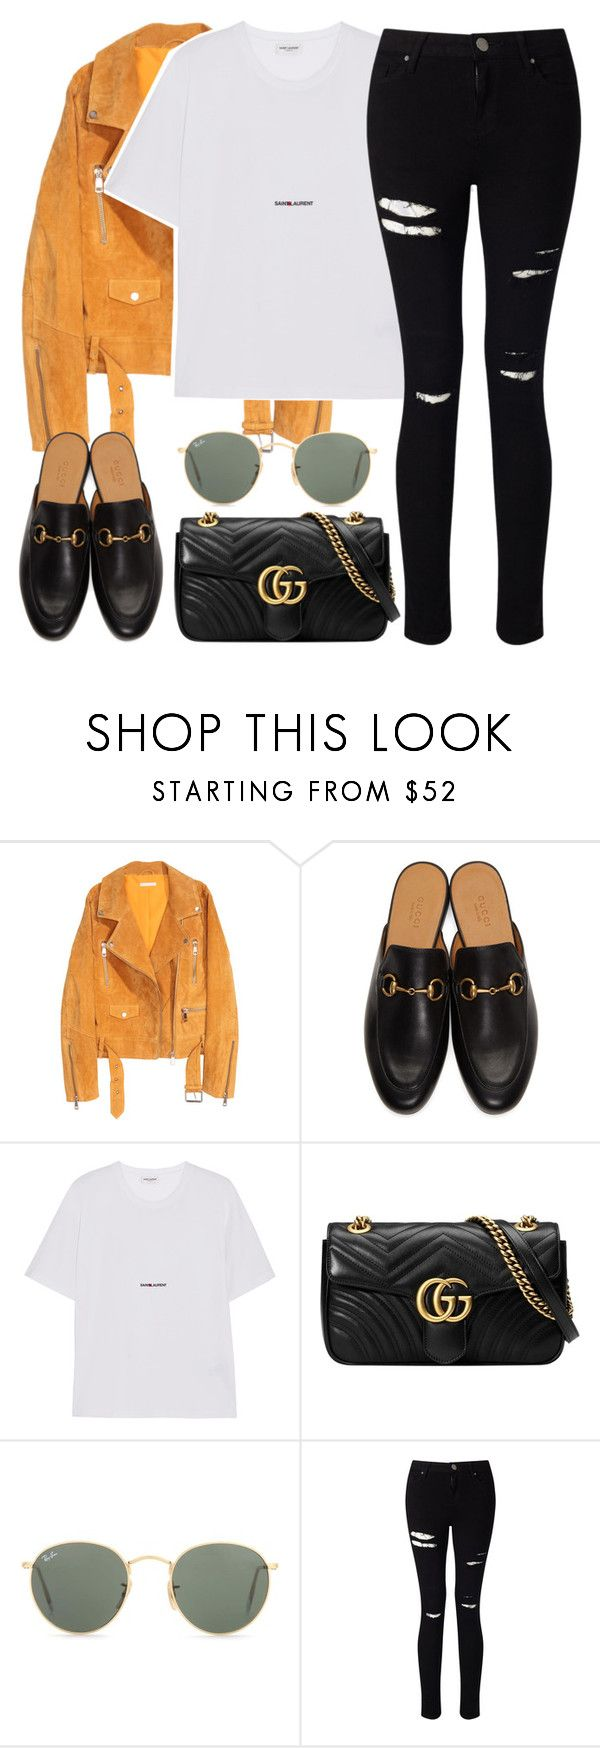 """""""Untitled #3219"""" by elenaday ❤ liked on Polyvore featuring SKINN, Gucci, Yves Saint Laurent, Ray-Ban and Miss Selfridge"""